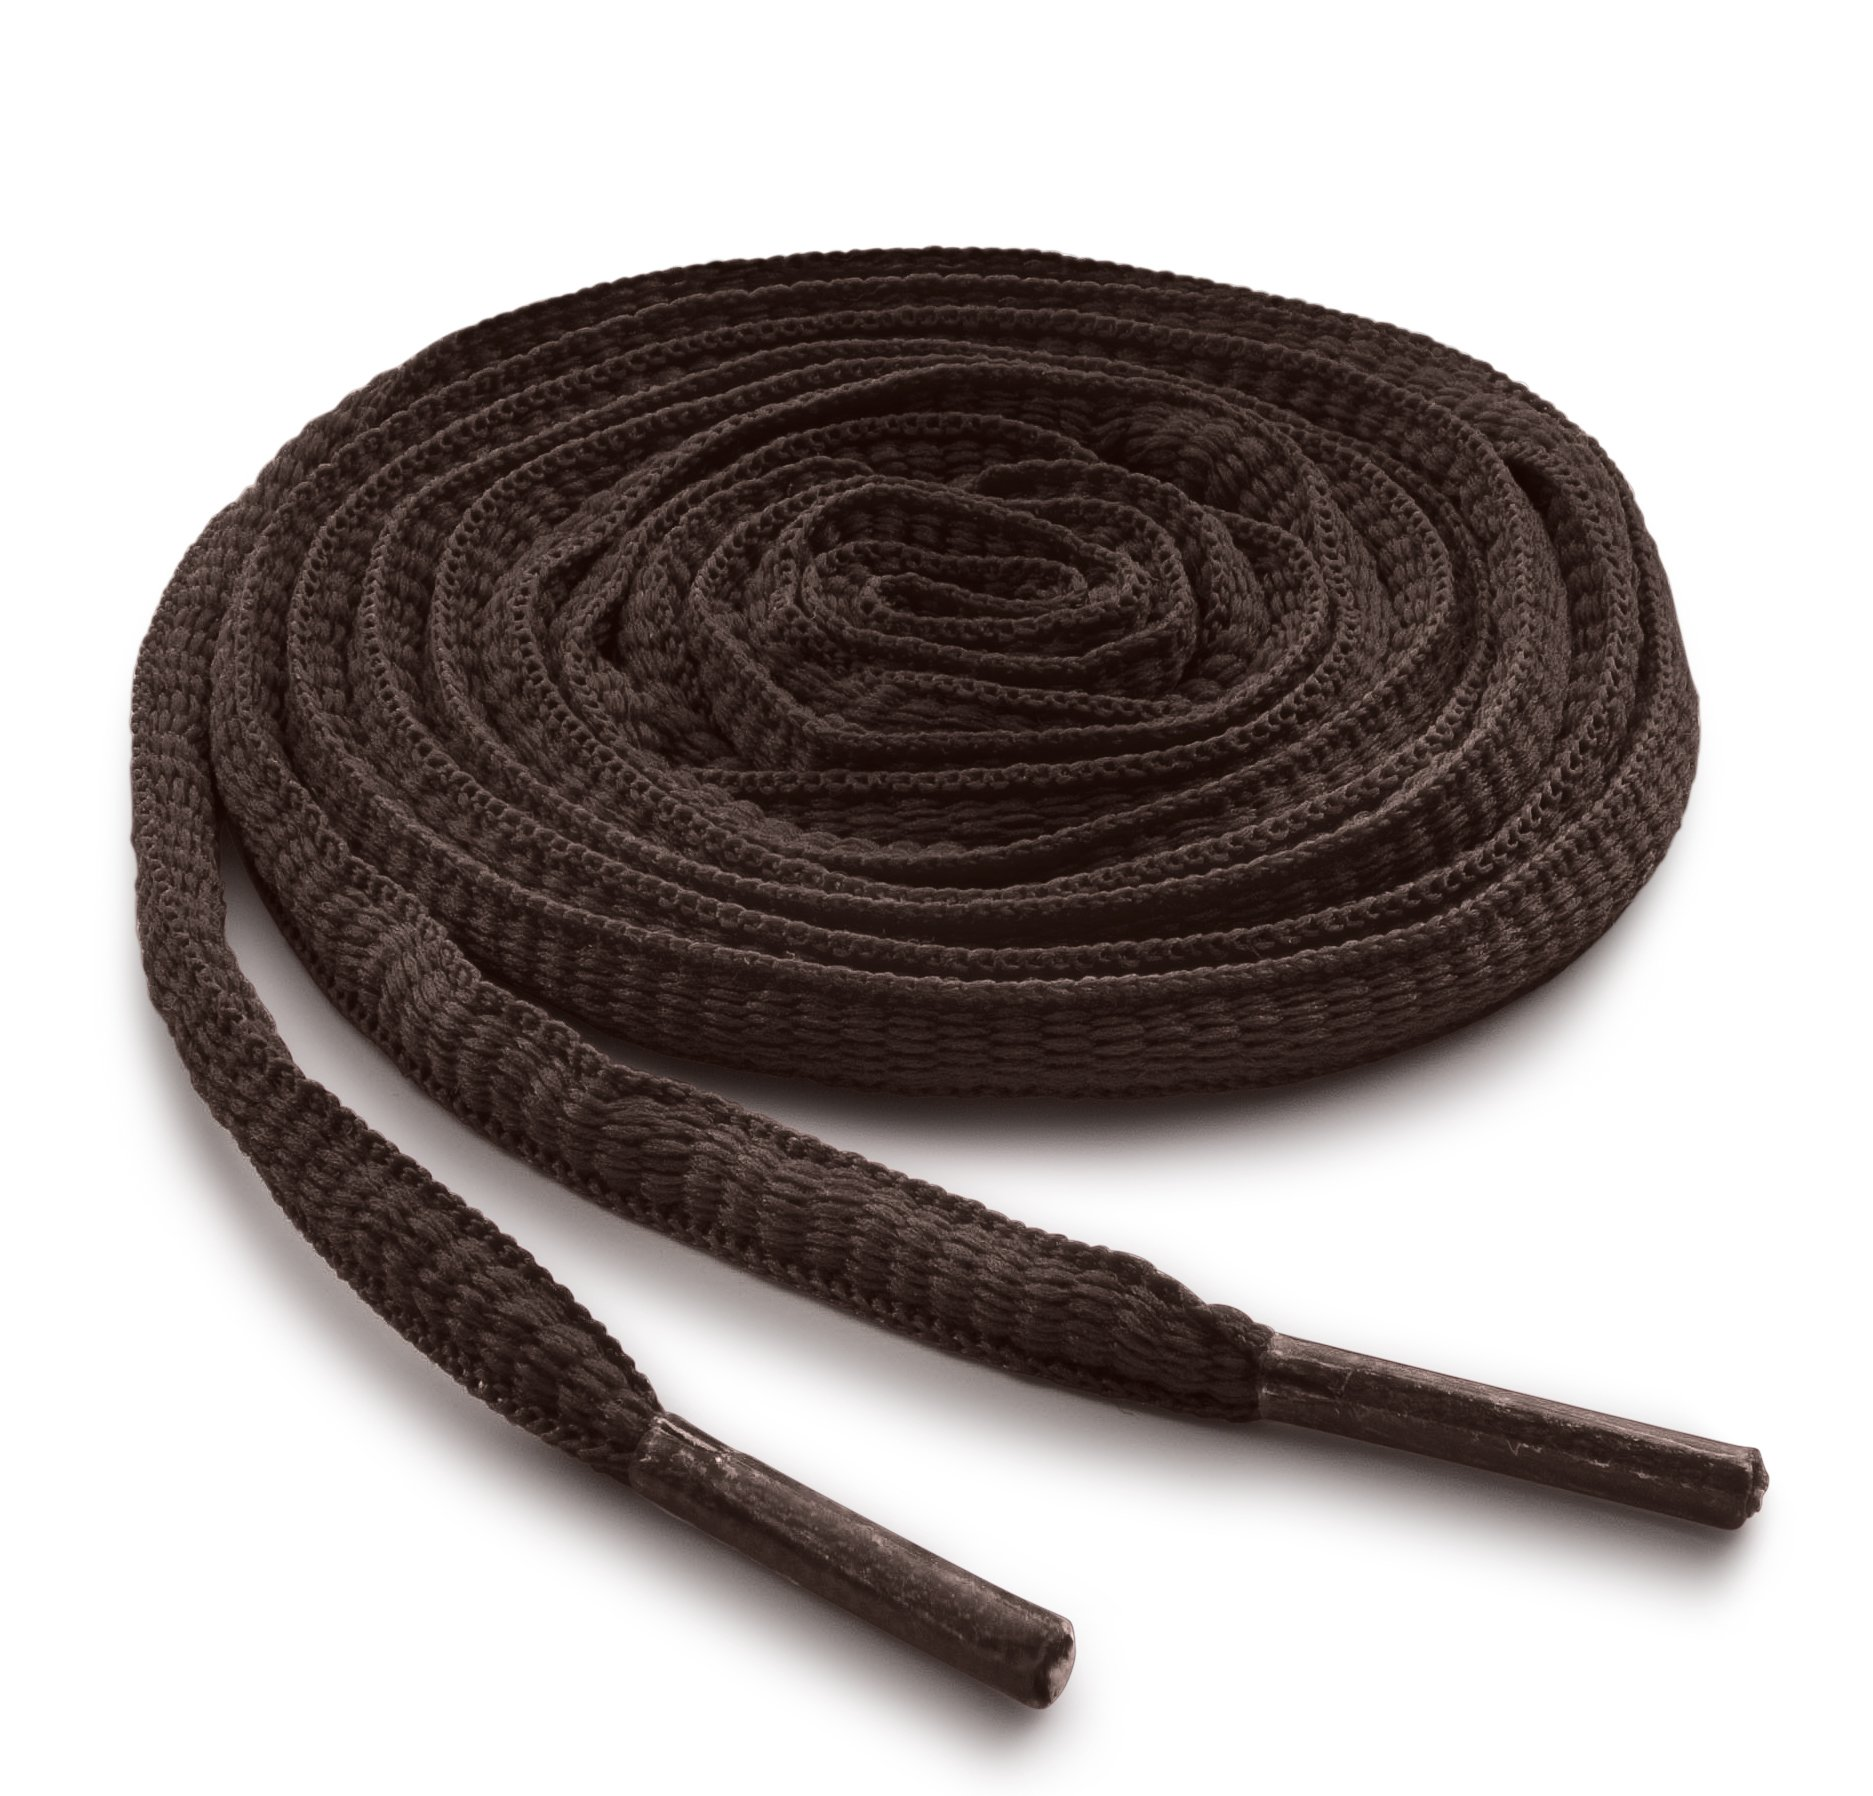 OrthoStep Oval Athletic Brown 63 inch Shoelaces 2 Pair Pack